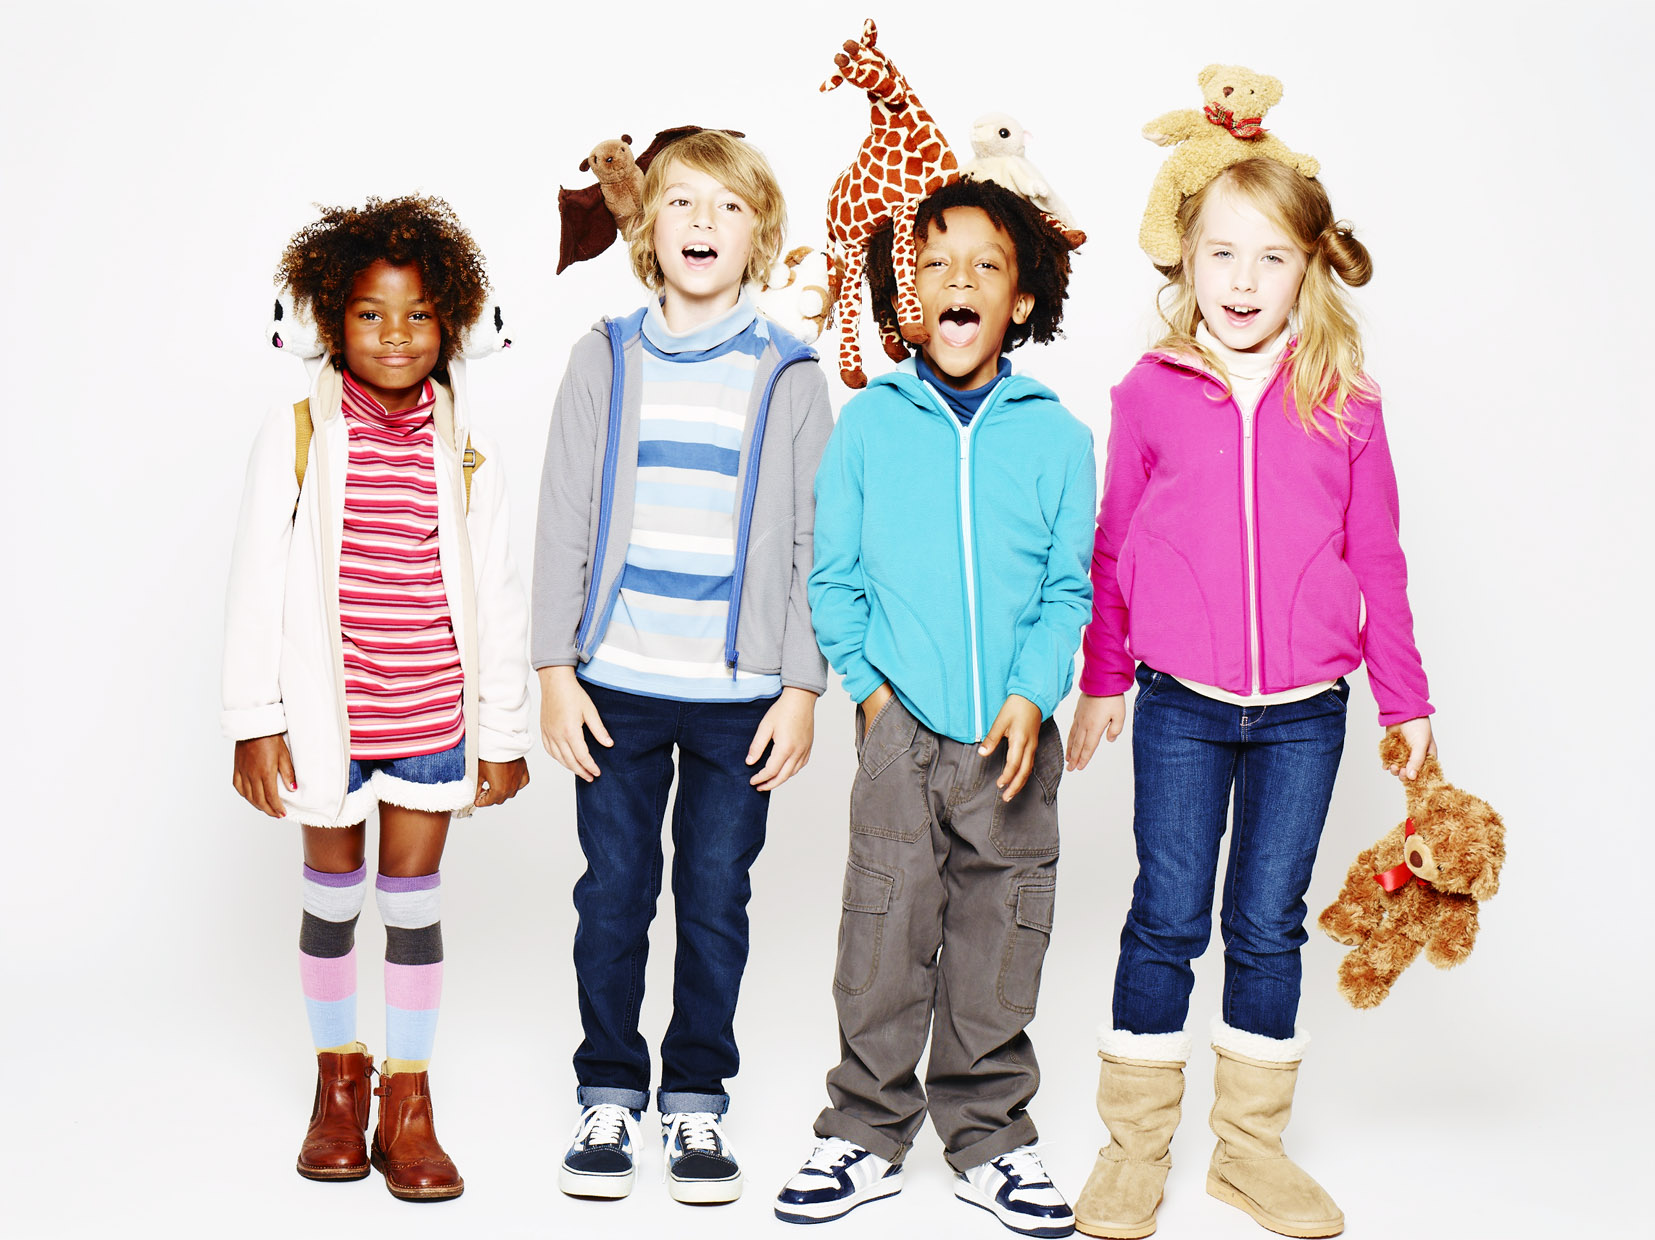 From baby clothes with adorable designs to girls' clothes in a variety of styles, there's something cute for all of your kids. Belk's selection of high quality kids' clothing is made with comfortable materials that last through jumping, running and wild adventures.